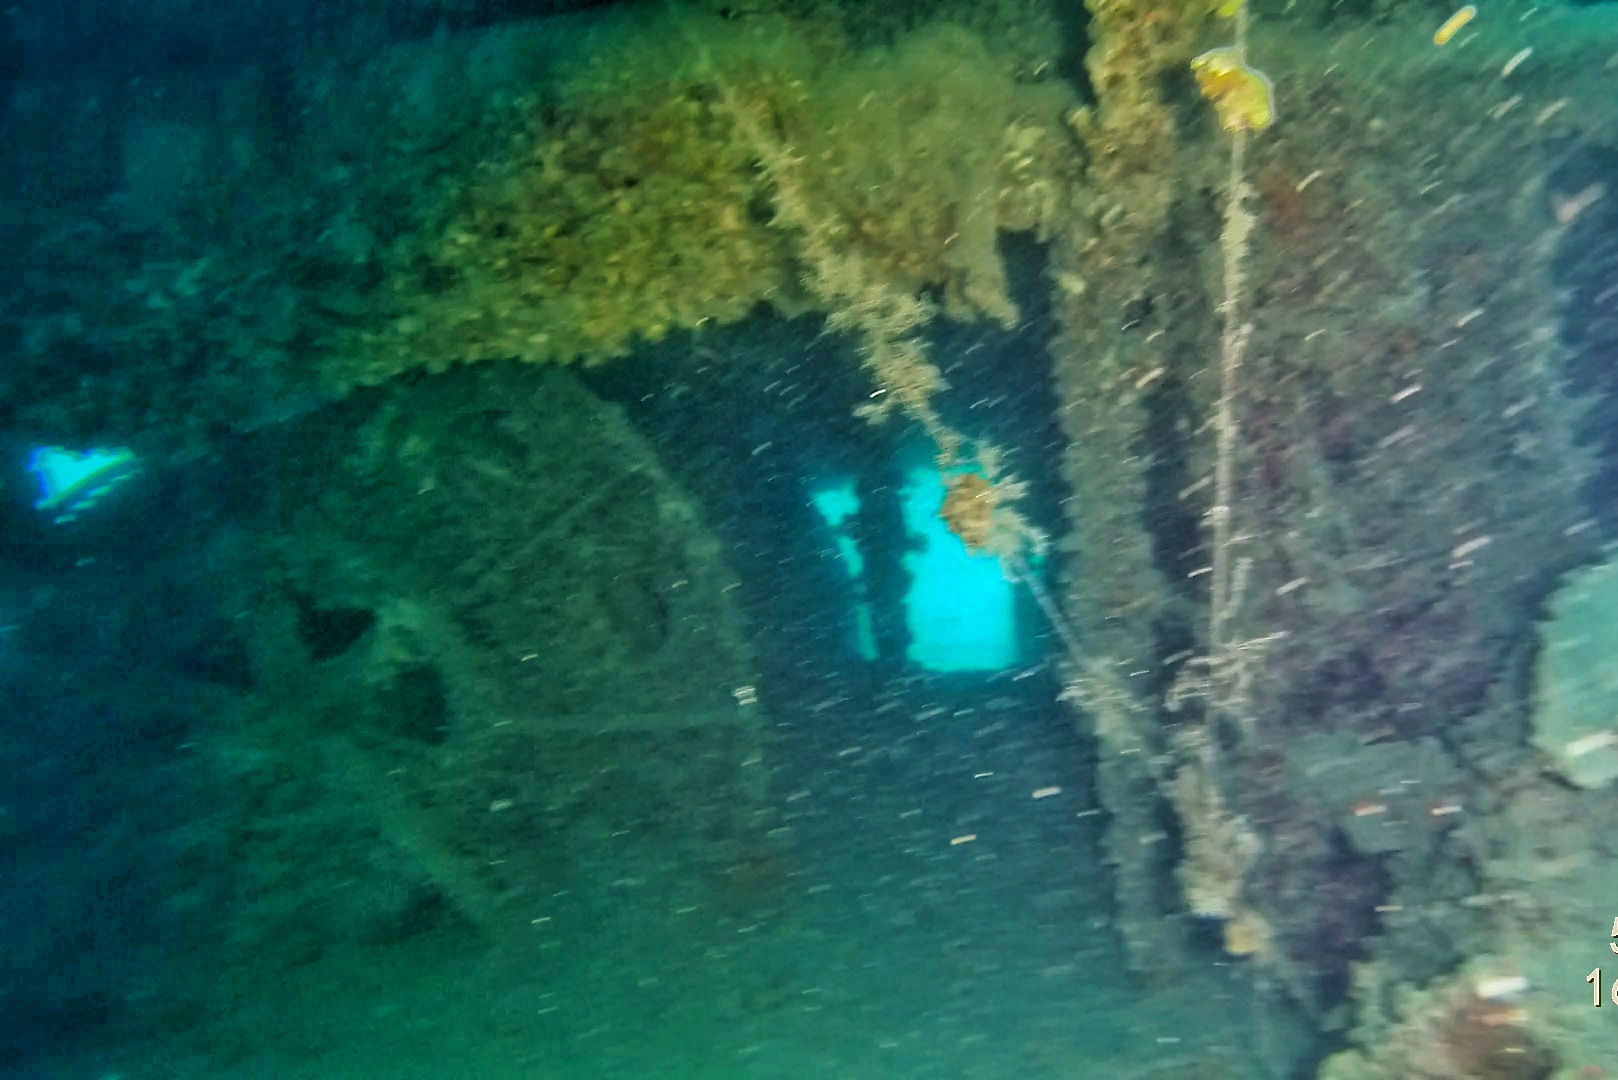 The wreck, located several years ago, is a popular diving site for experienced divers.